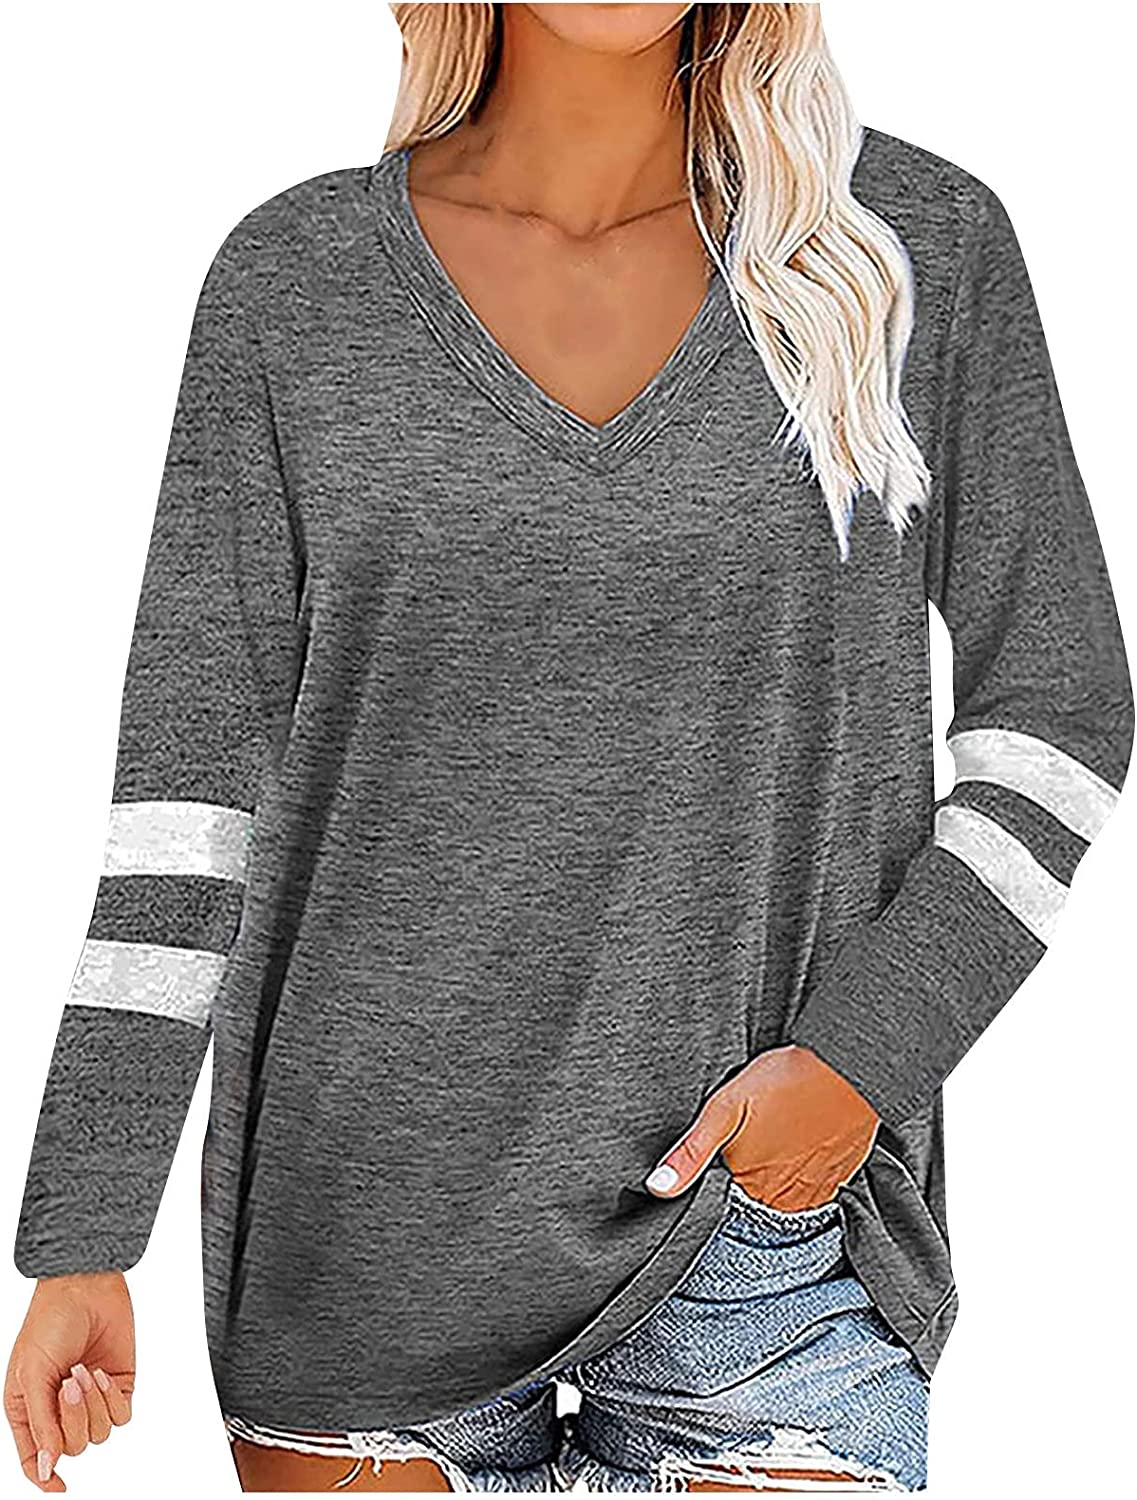 Womens Tops and Blouses Challenge the lowest Brand new price of Japan Long Sleeve Solid Neck Casual T Loose V